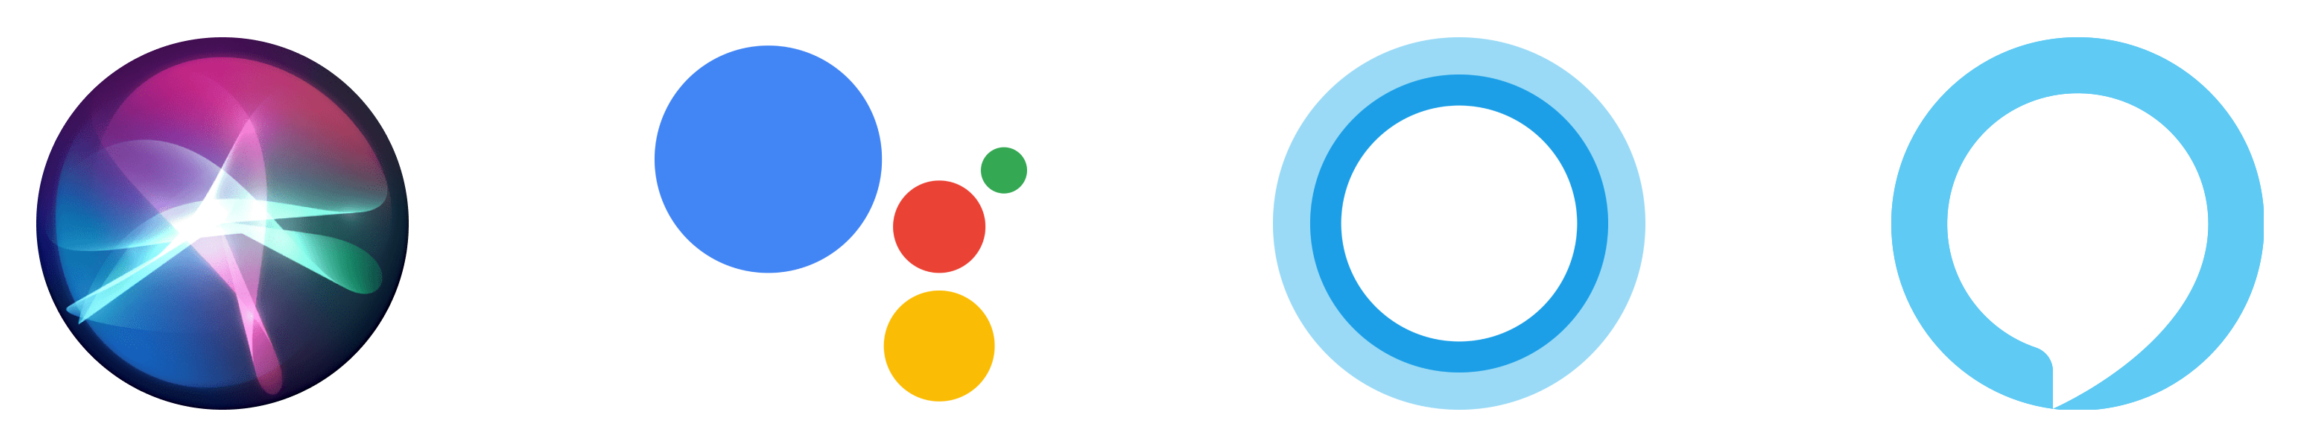 Four logos for Apple, Google, Microsoft and Amazon's voice assistants